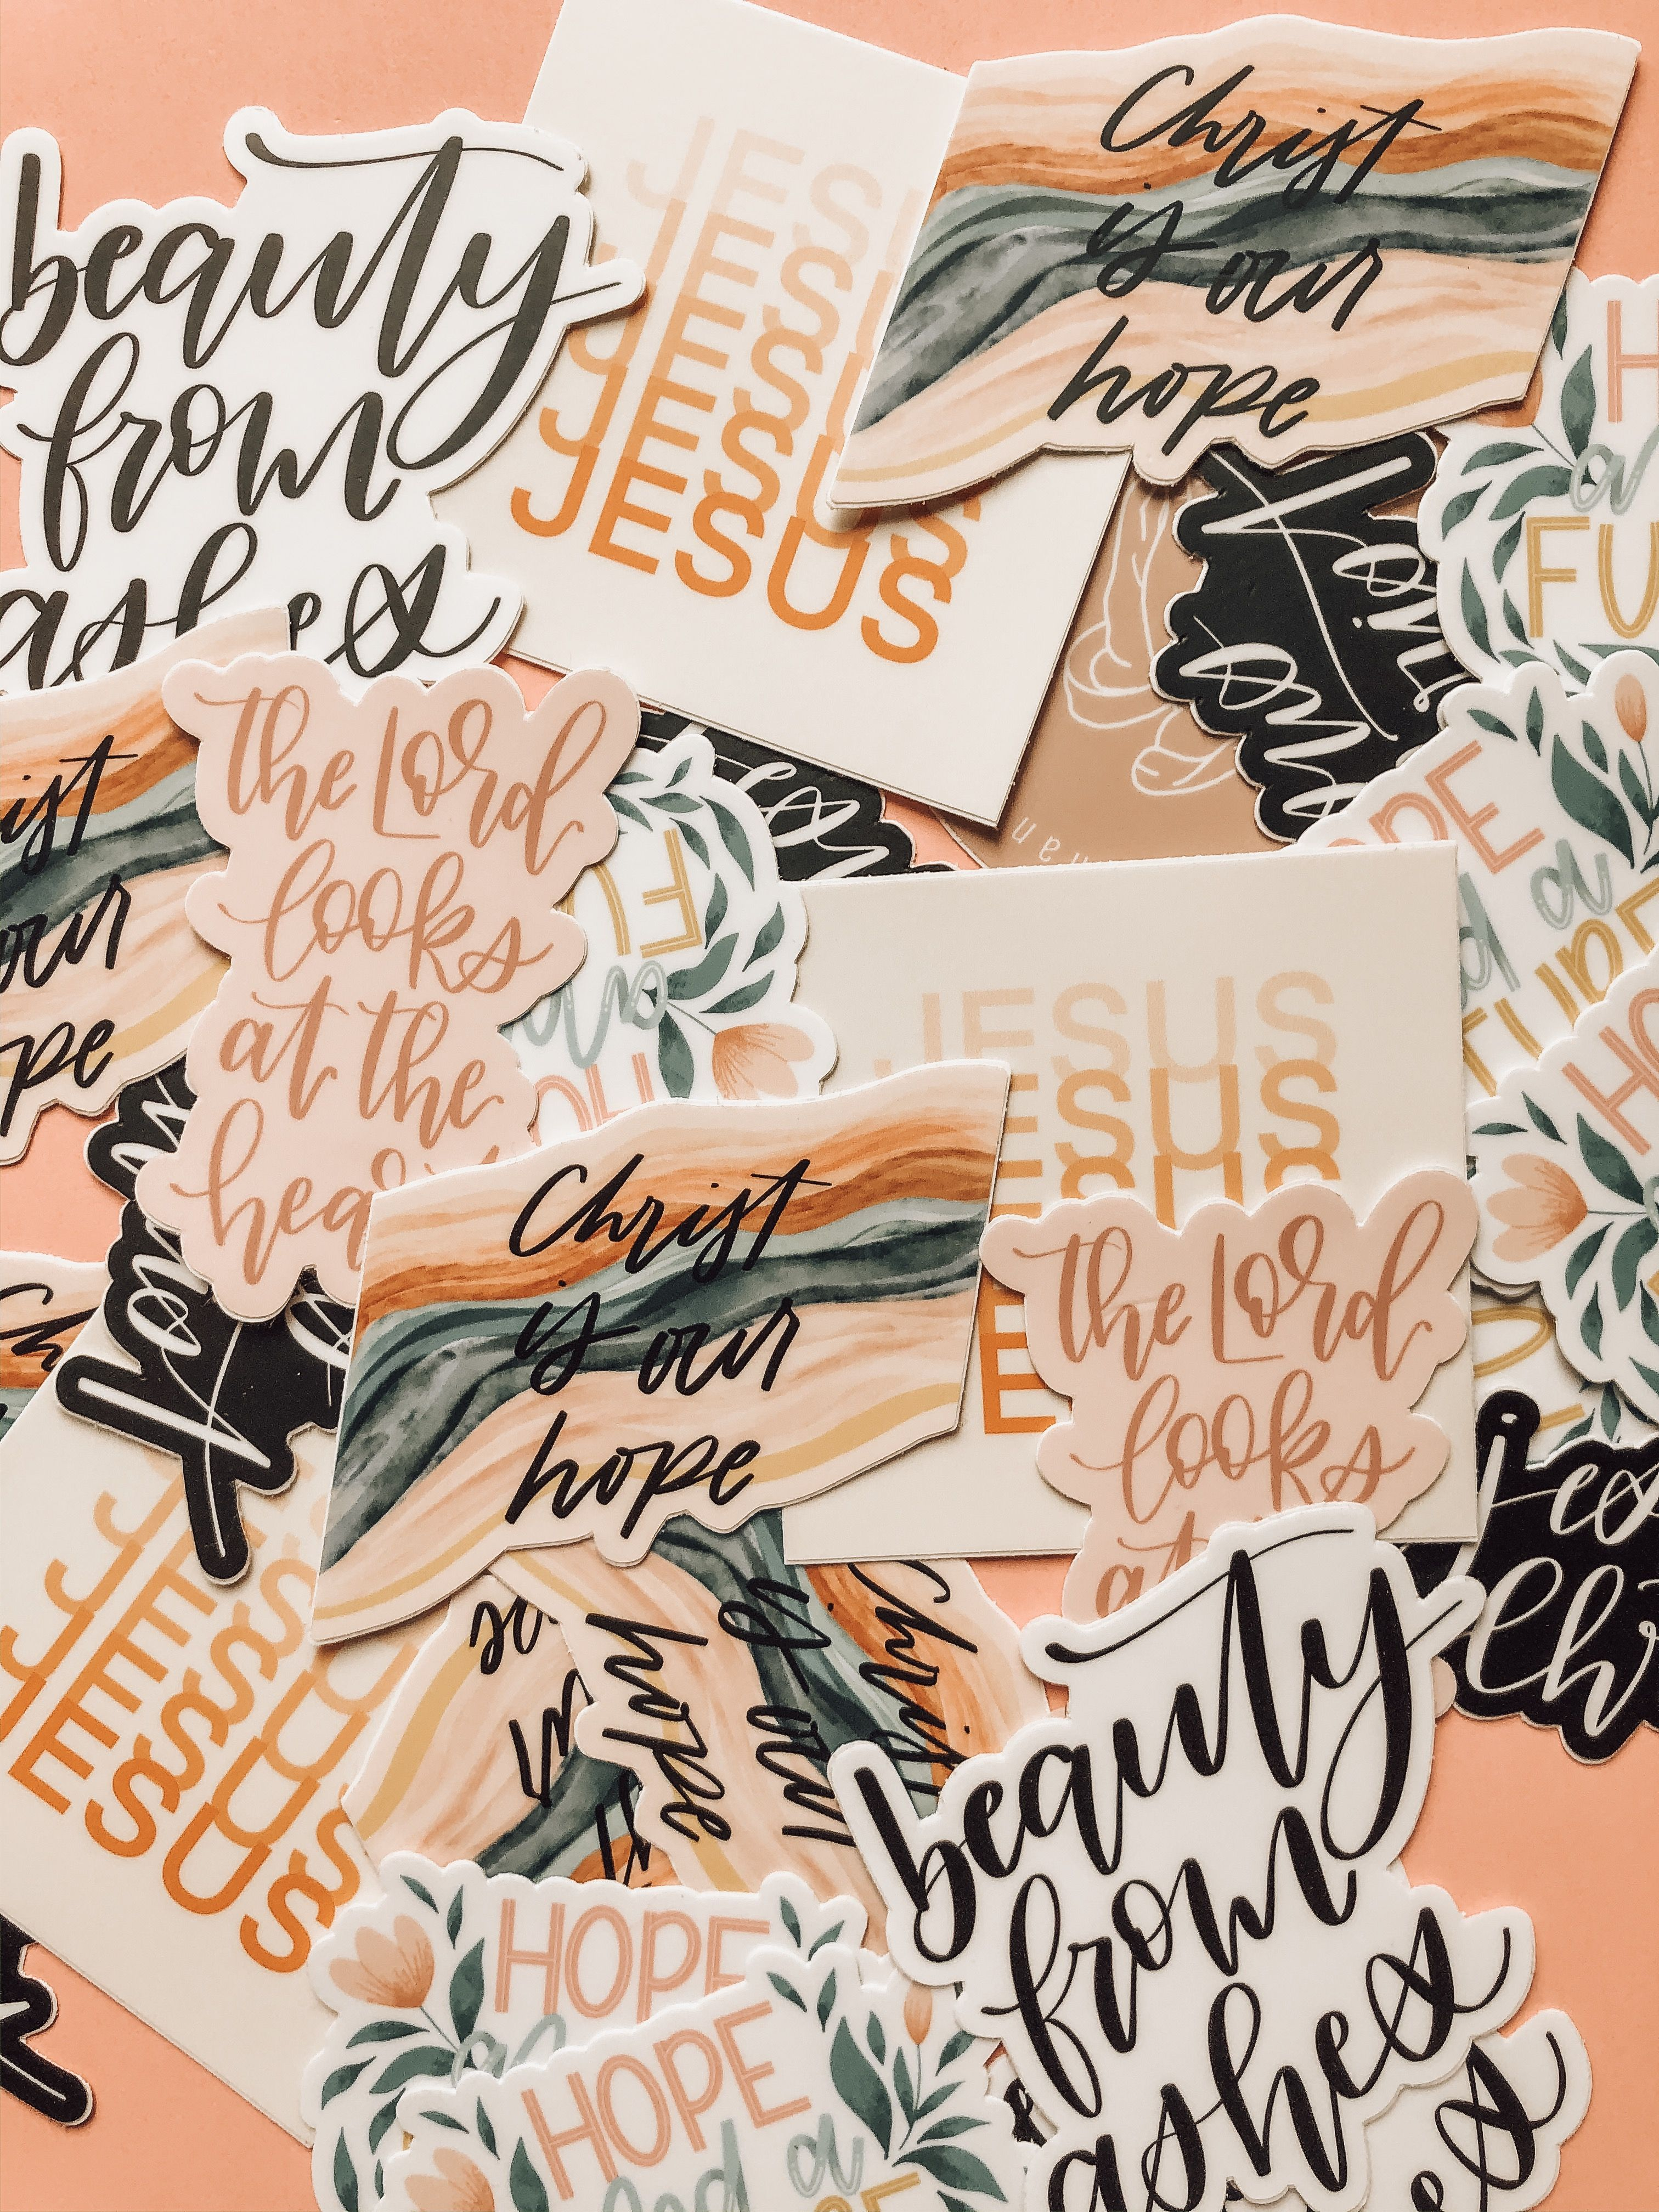 Christian Stickers Christian Stickers Christian Backgrounds Faith Stickers